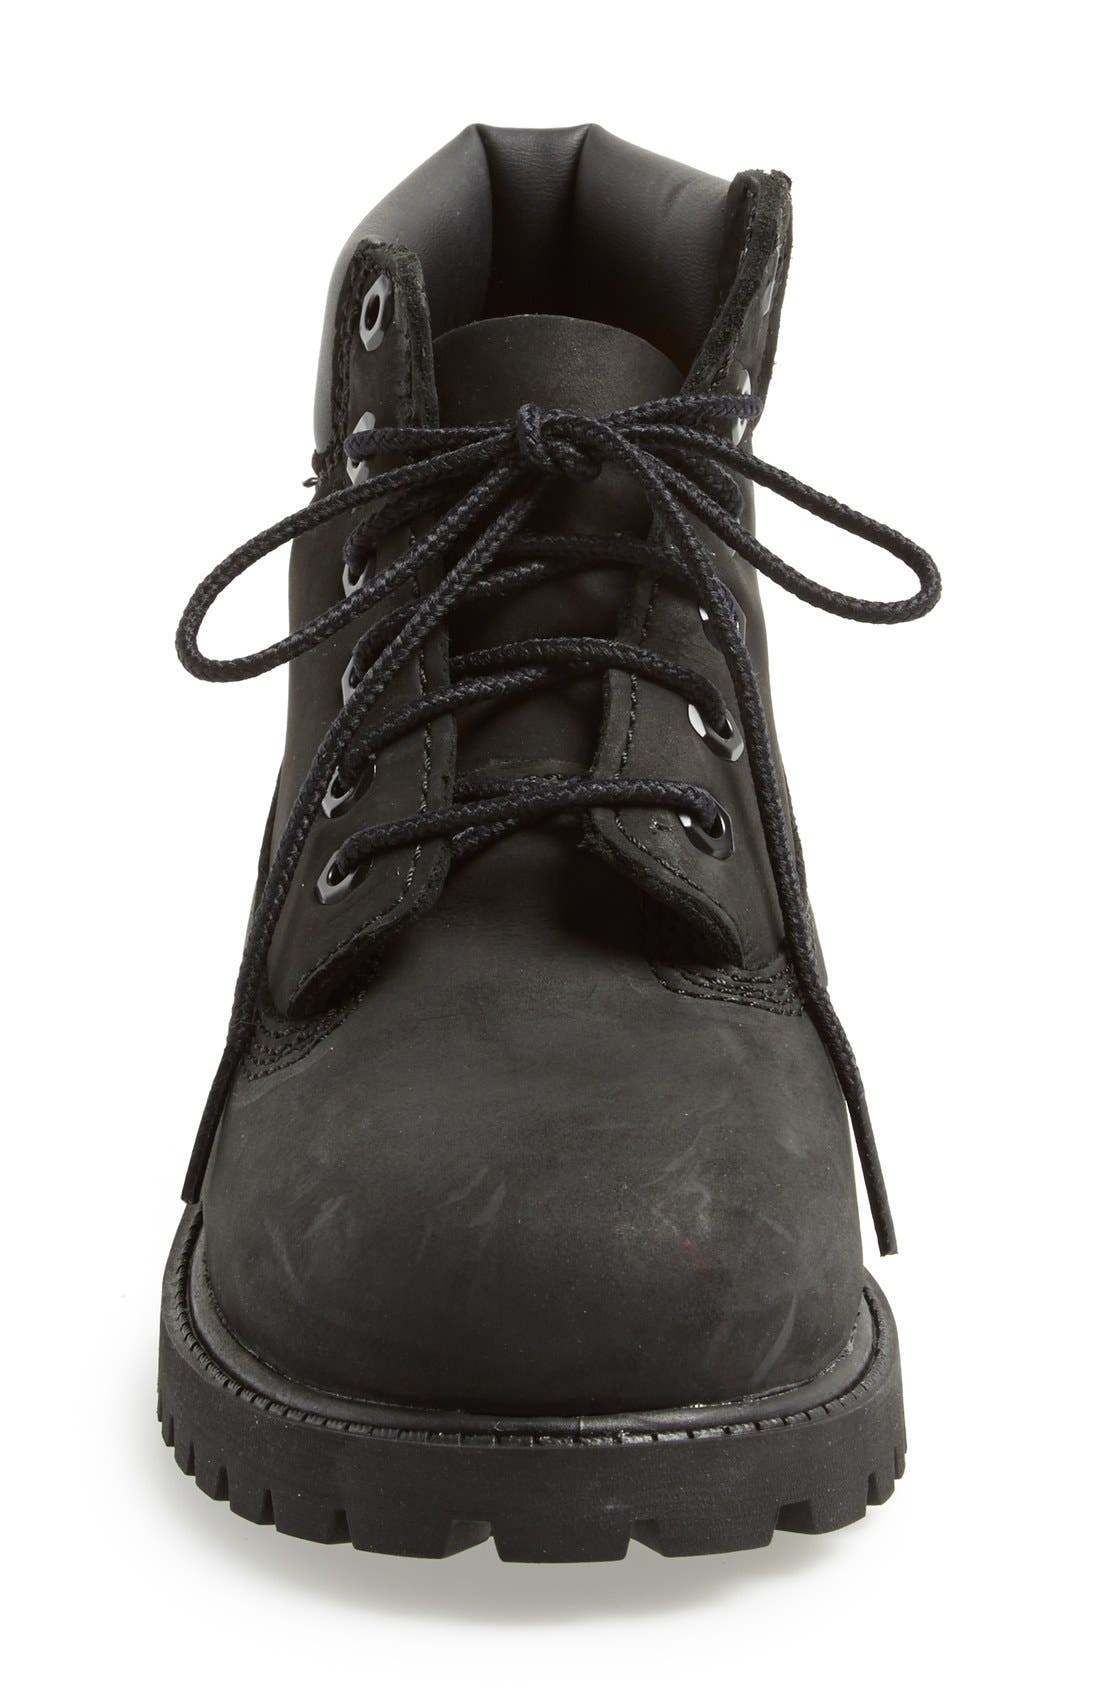 '6 Inch Premium' Waterproof Boot,                             Alternate thumbnail 3, color,                             Black Nubuck